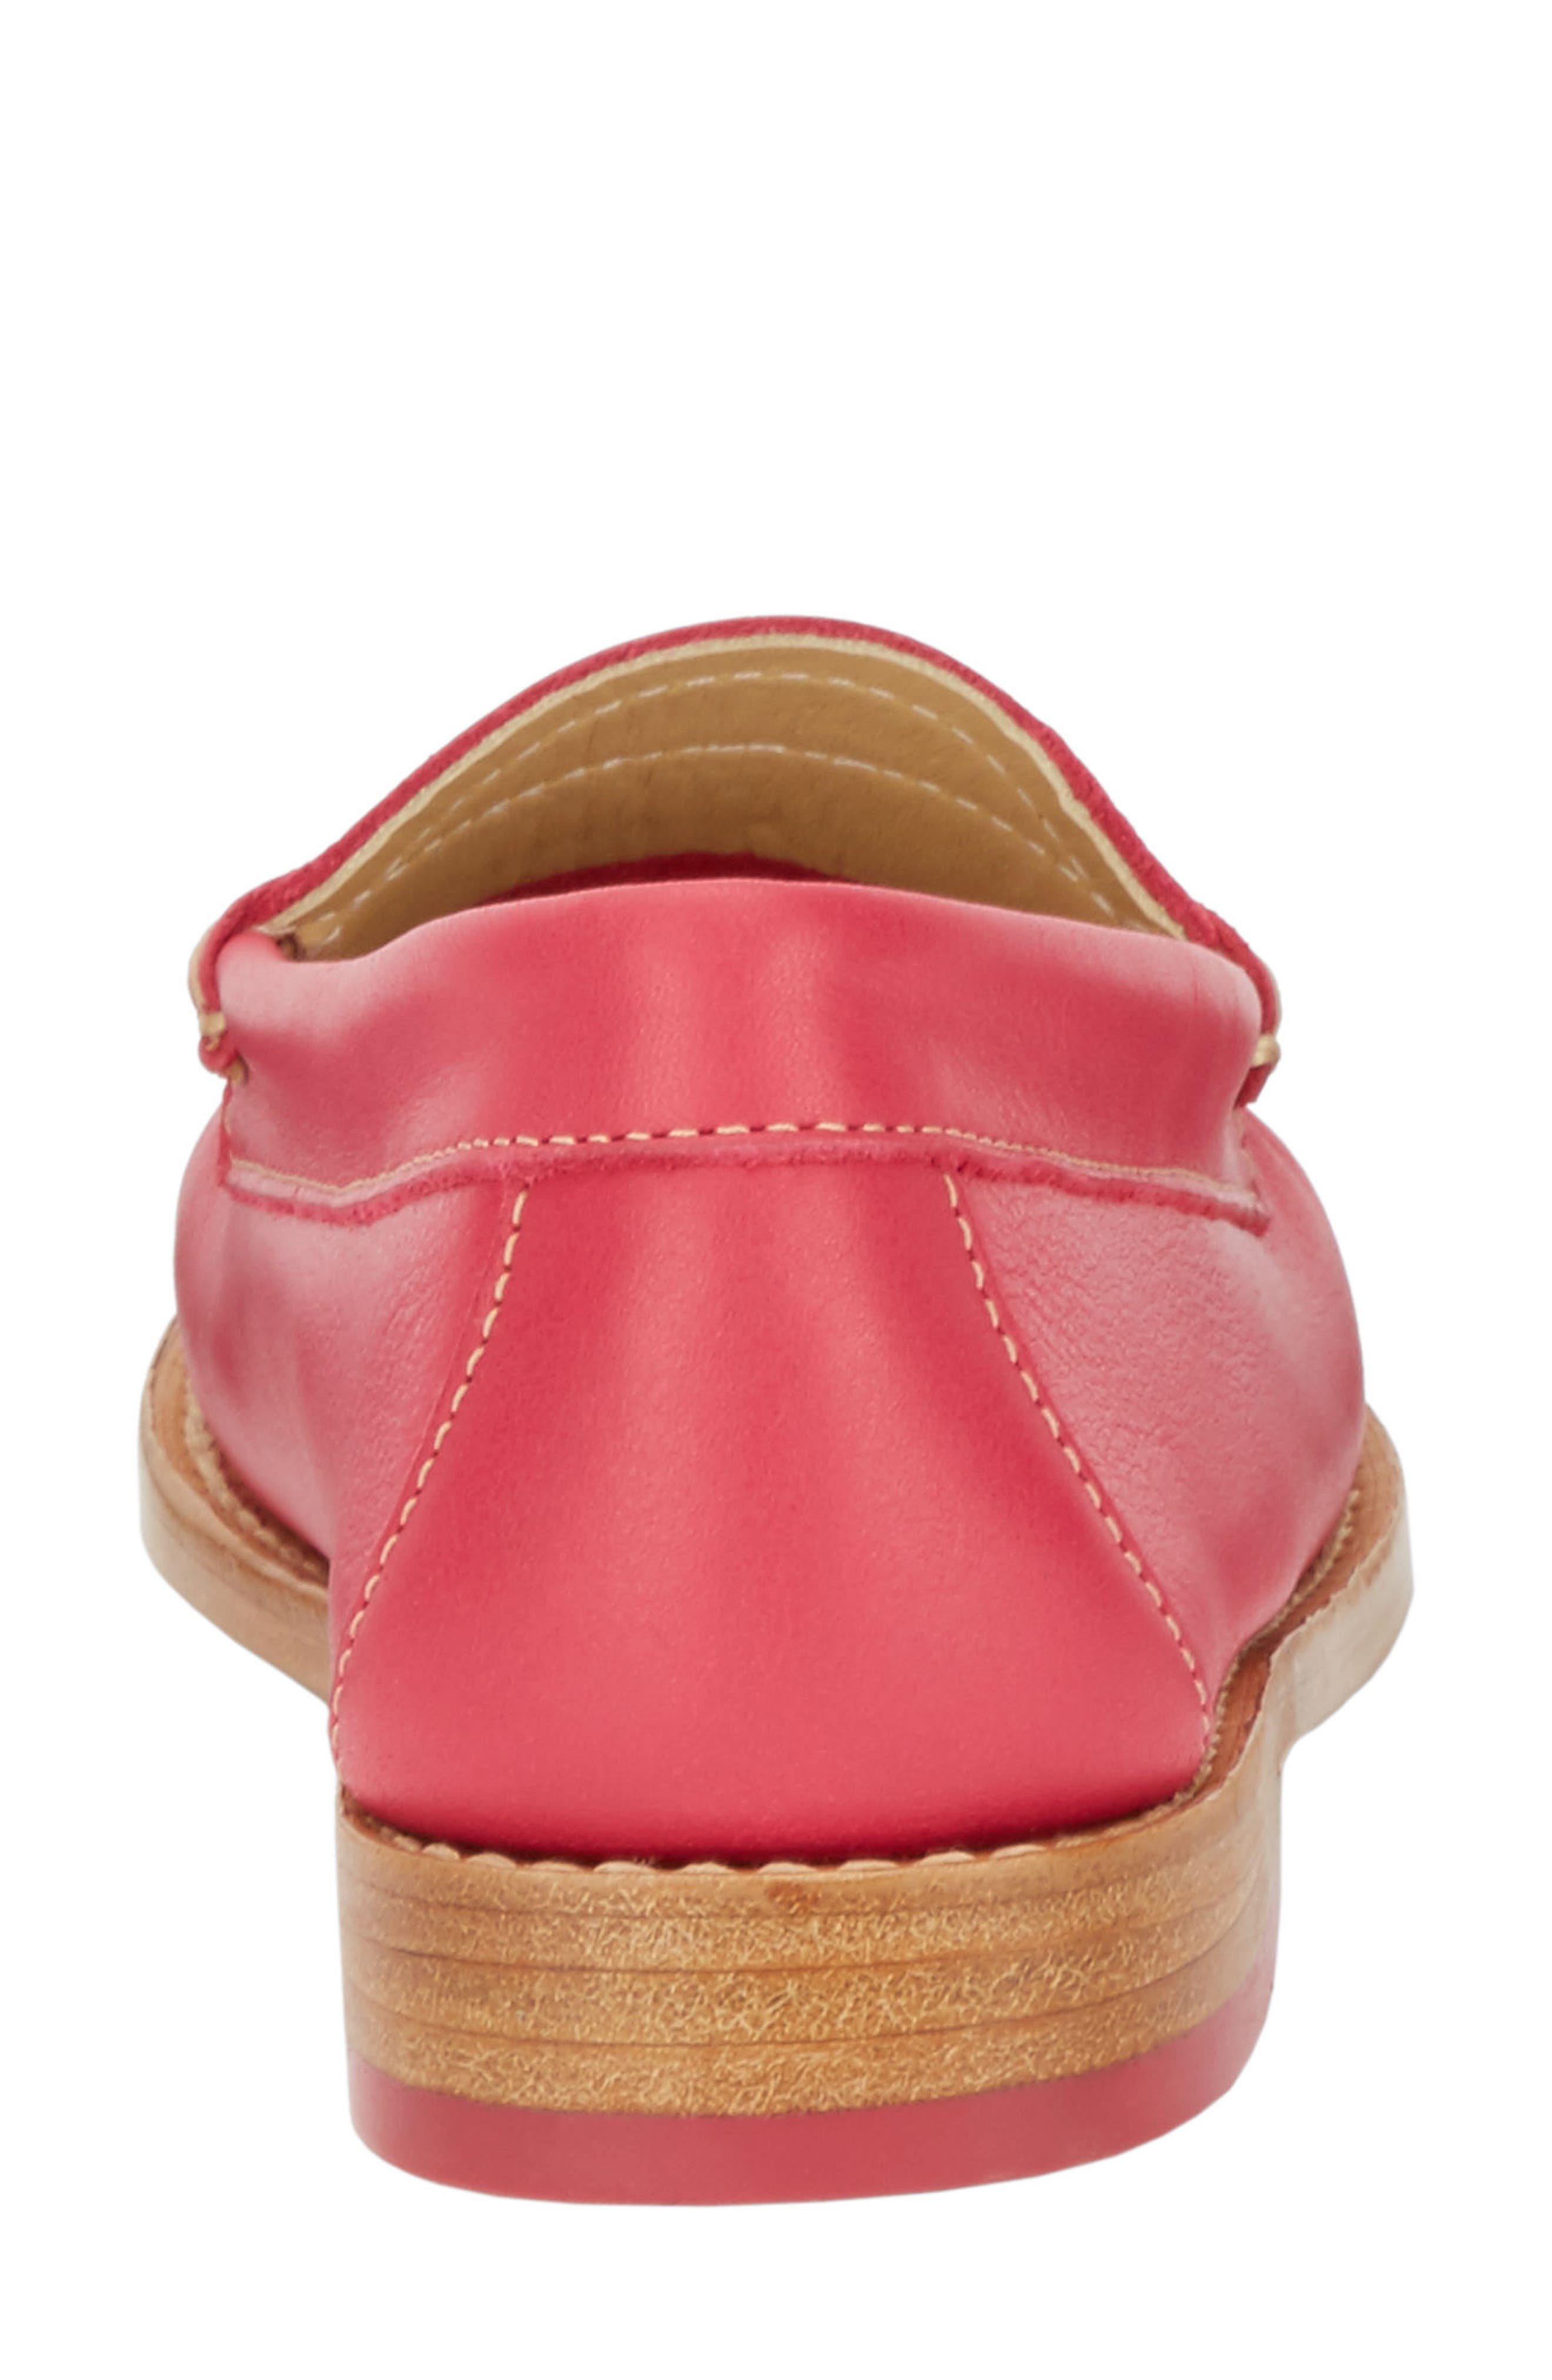 'Whitney' Loafer,                             Alternate thumbnail 7, color,                             BERRY PINK LEATHER